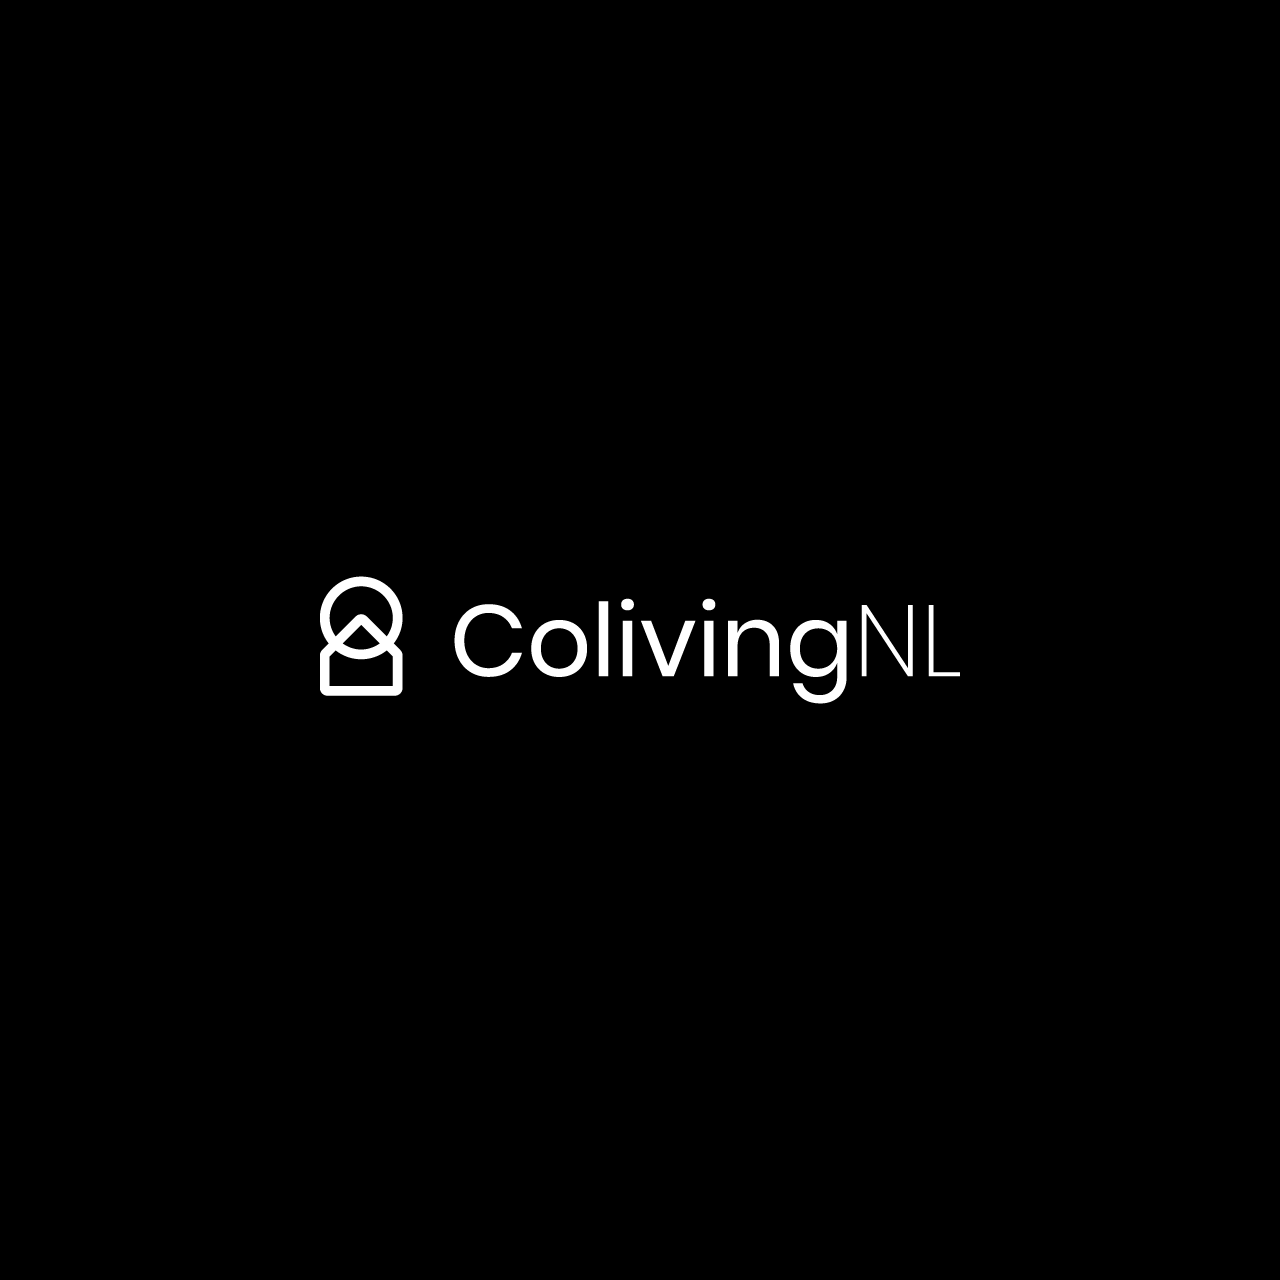 ColivingNL white logotype with black background